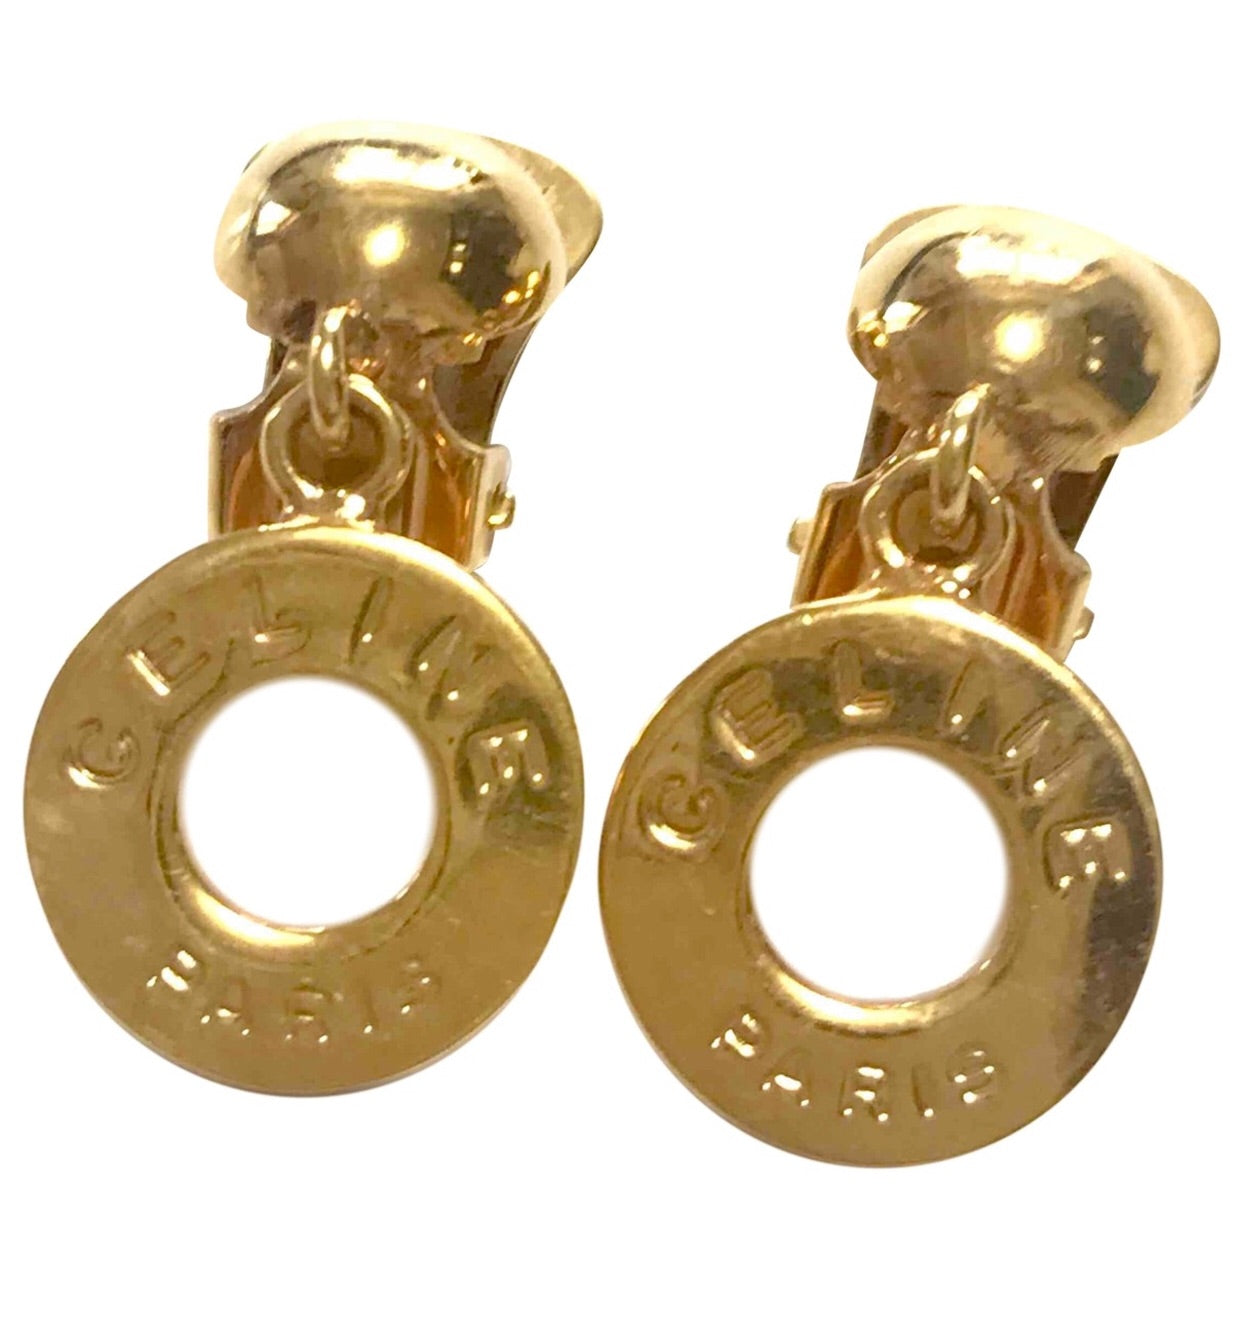 Vintage Celine golden round ball and logo embossed frame earrings. Classic dangle earrings.